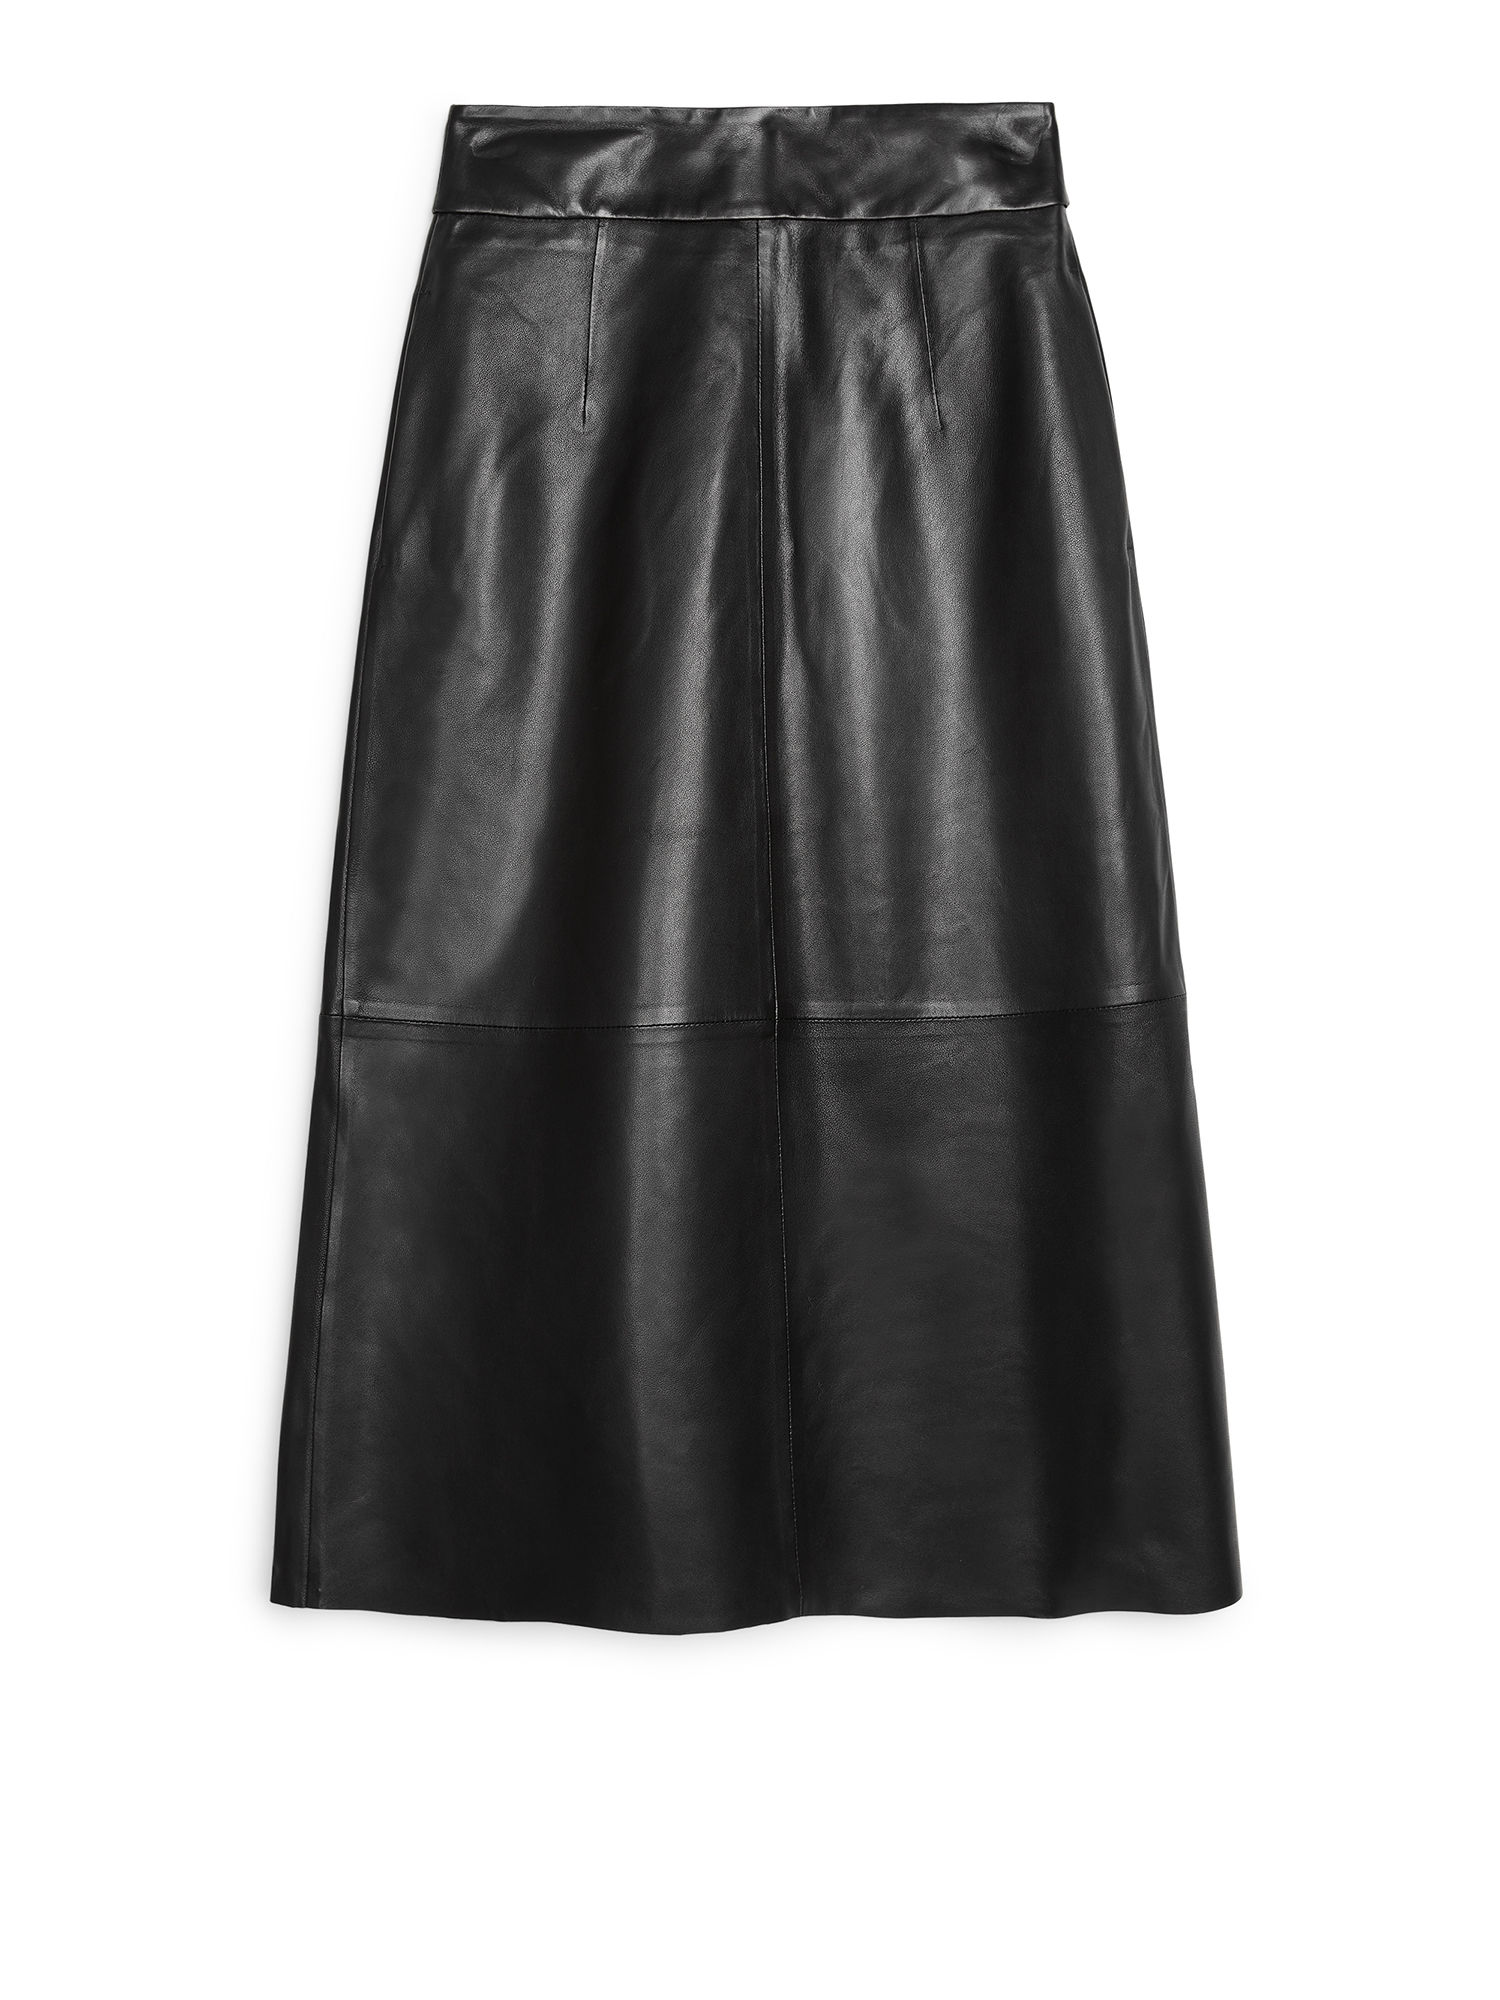 Fabric Swatch image of Arket leather skirt in black